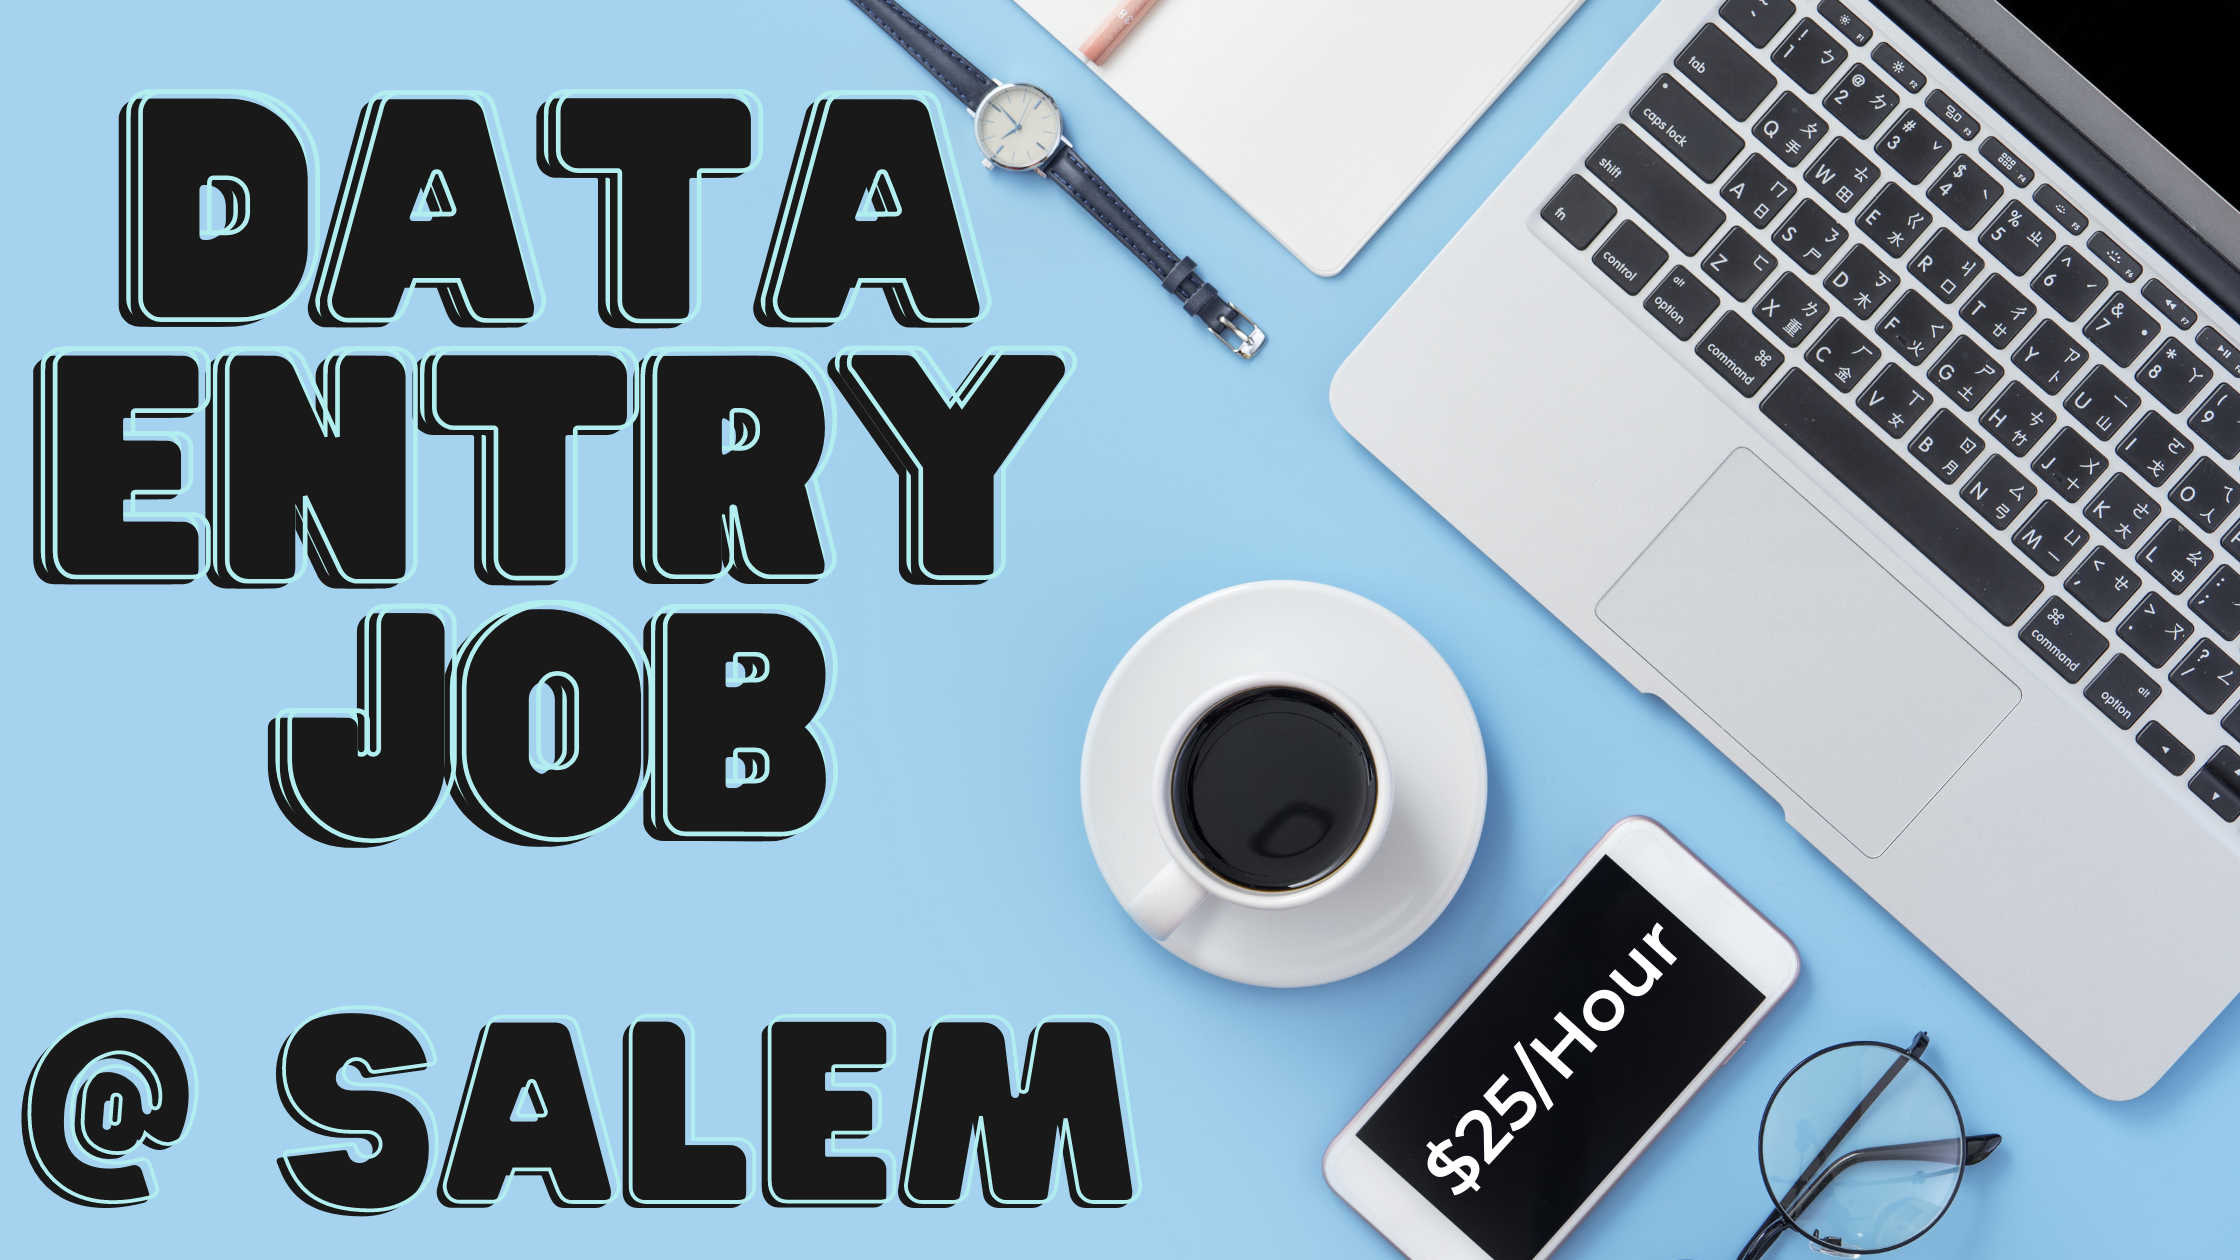 Data Entry Work From Home Jobs At Salem. $25/Hour Typing Jobs From Home.